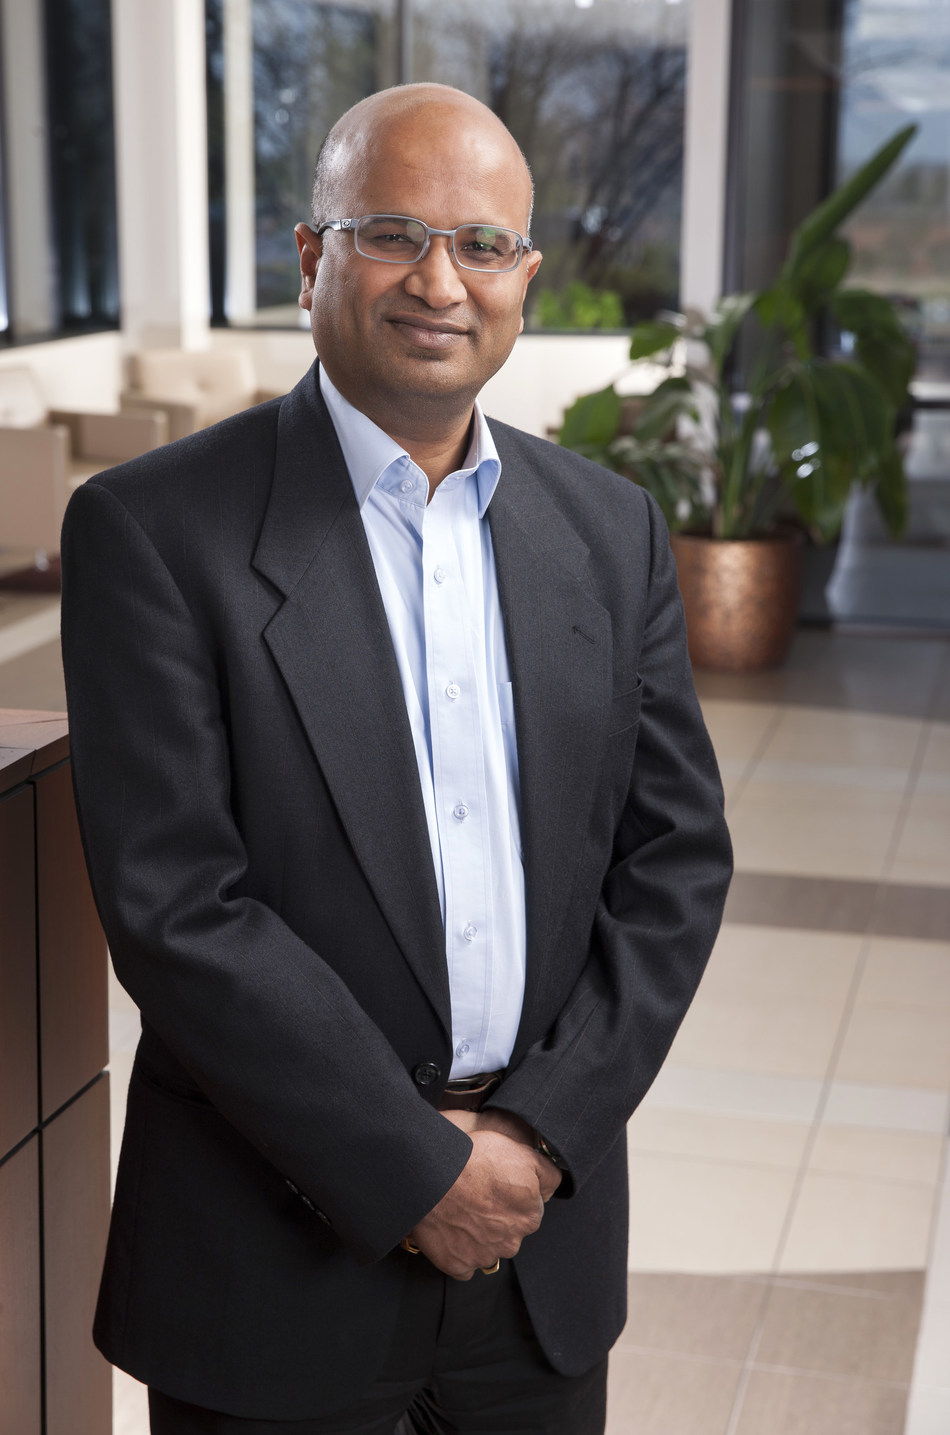 Swaminathan (Vasan) Srinivasan, P.E., president of Terracon Consultants, Inc., Olathe, KS